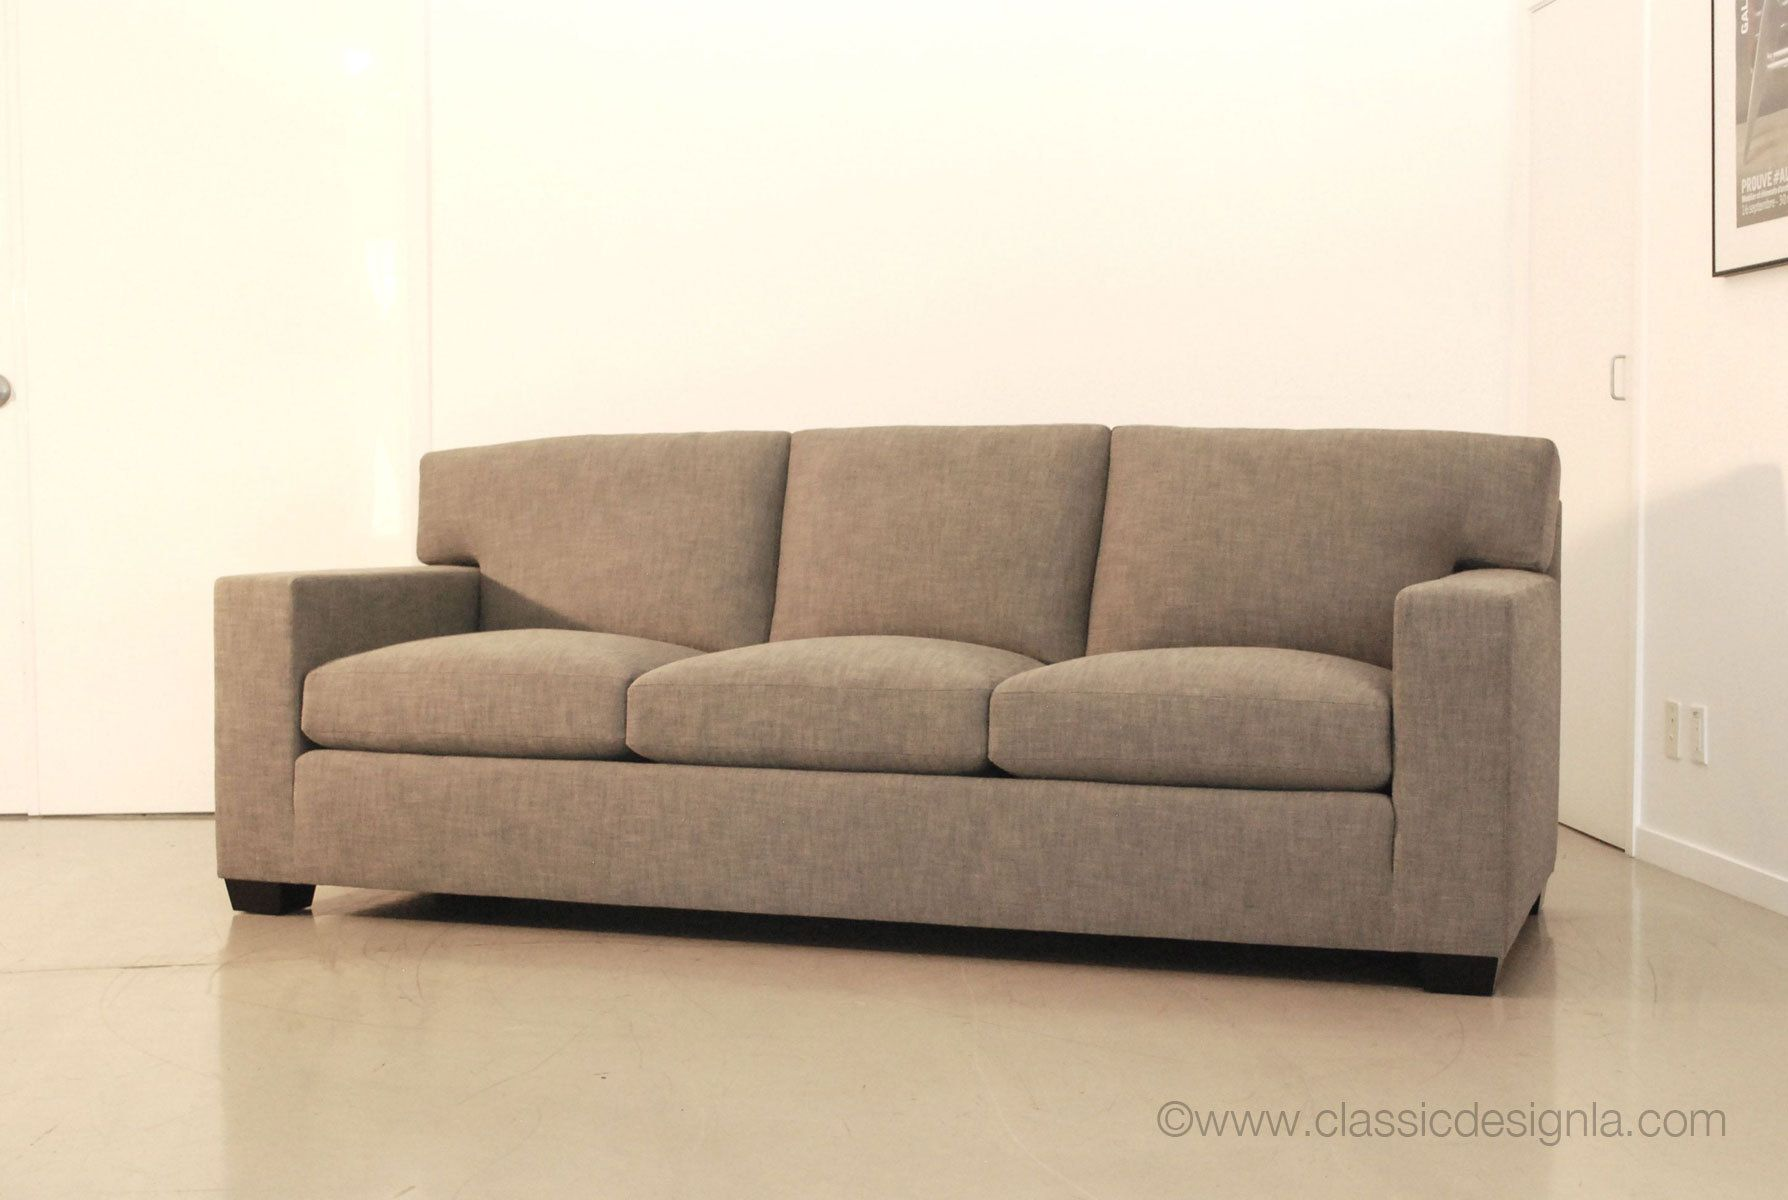 Custom JMF Sofa